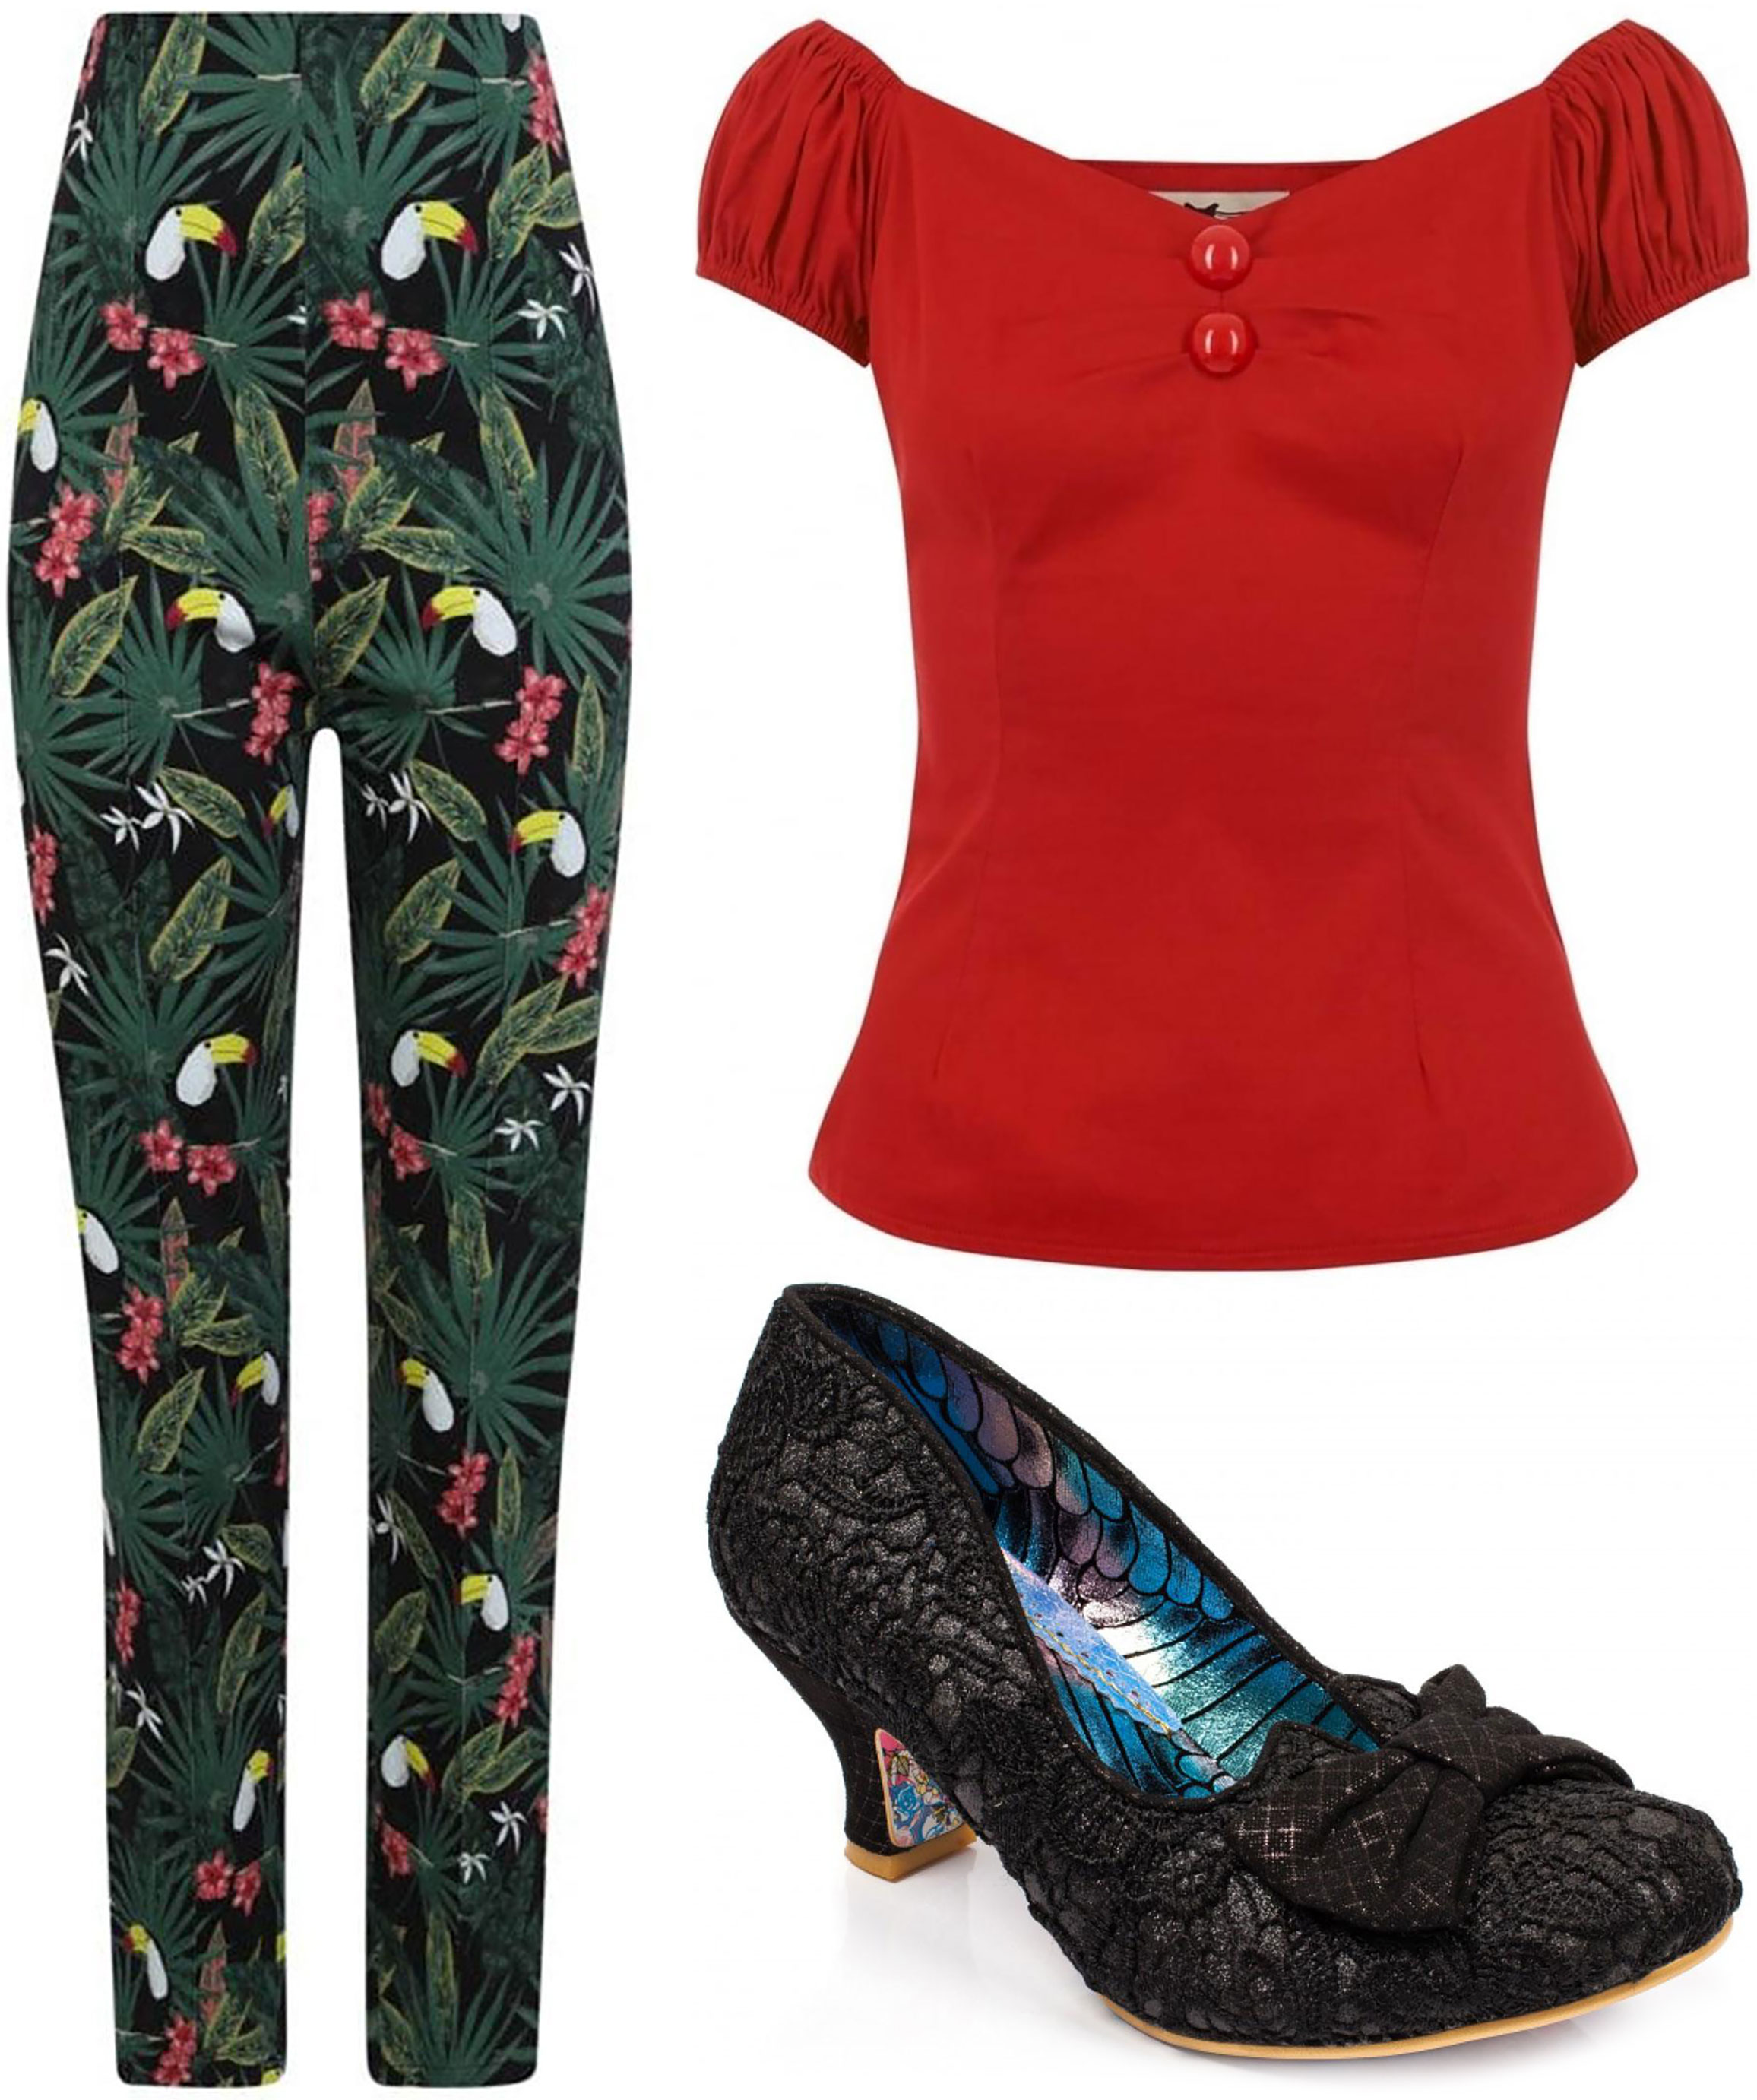 Collectif 'Bonnie' trousers with 'Dolores' top and Irregular Choice 'Razzle Dazzle' heels